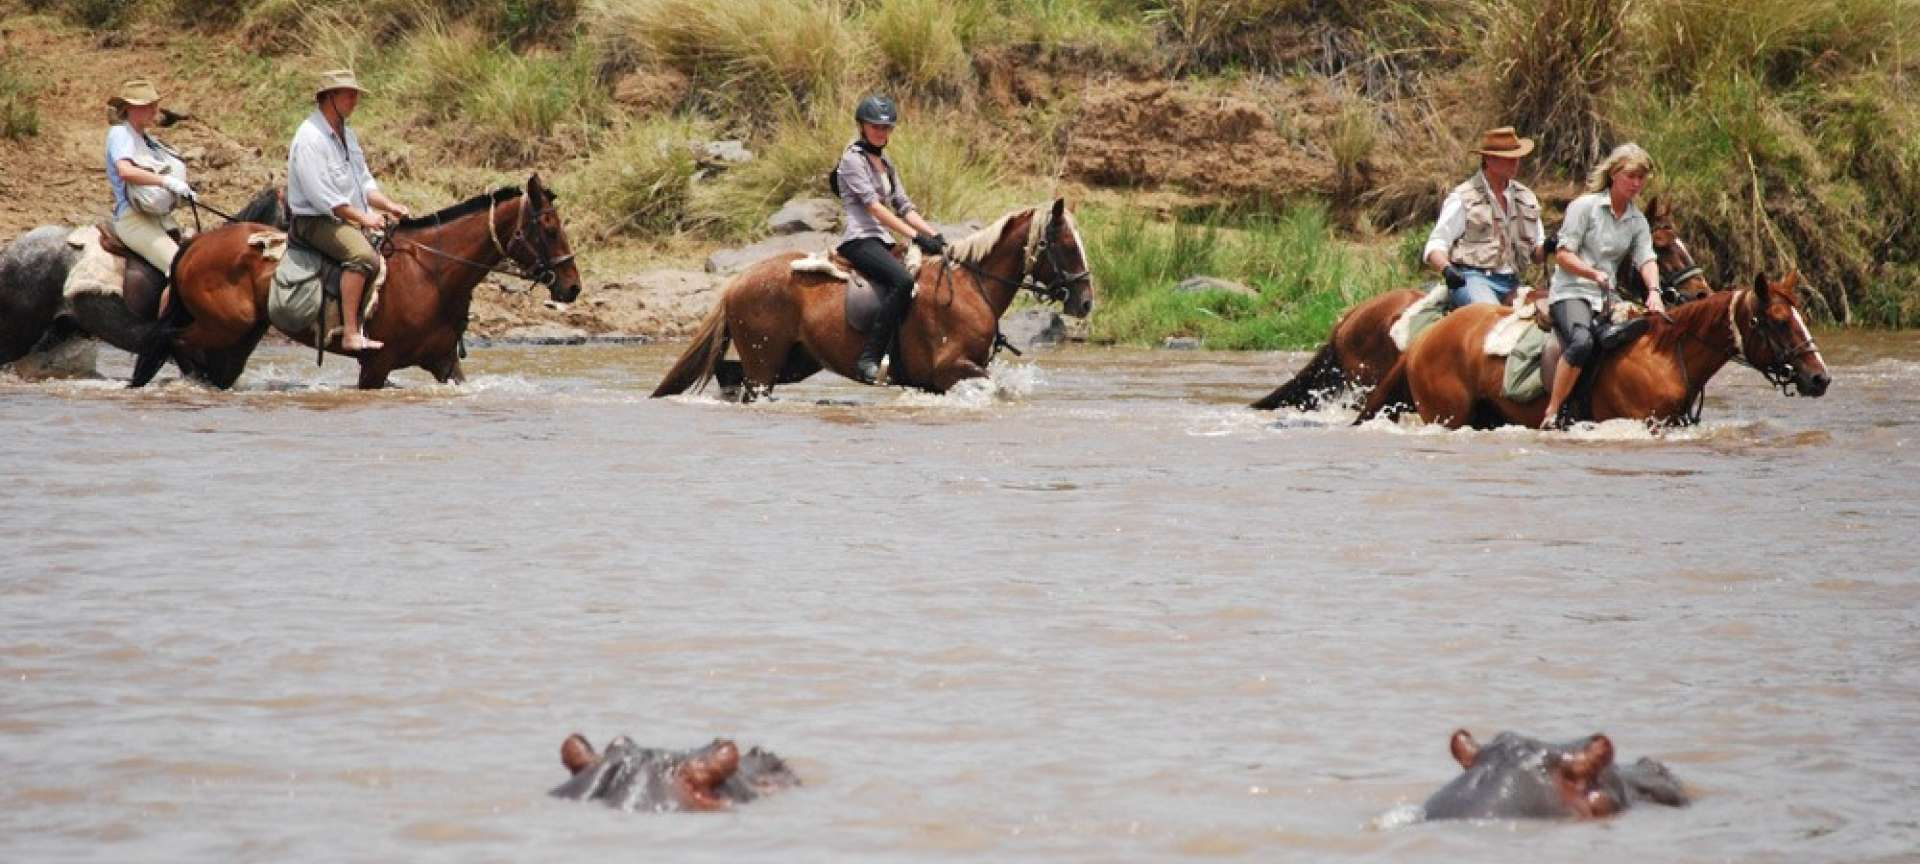 Horseback safaris in Africa - Africa Wildlife Safaris